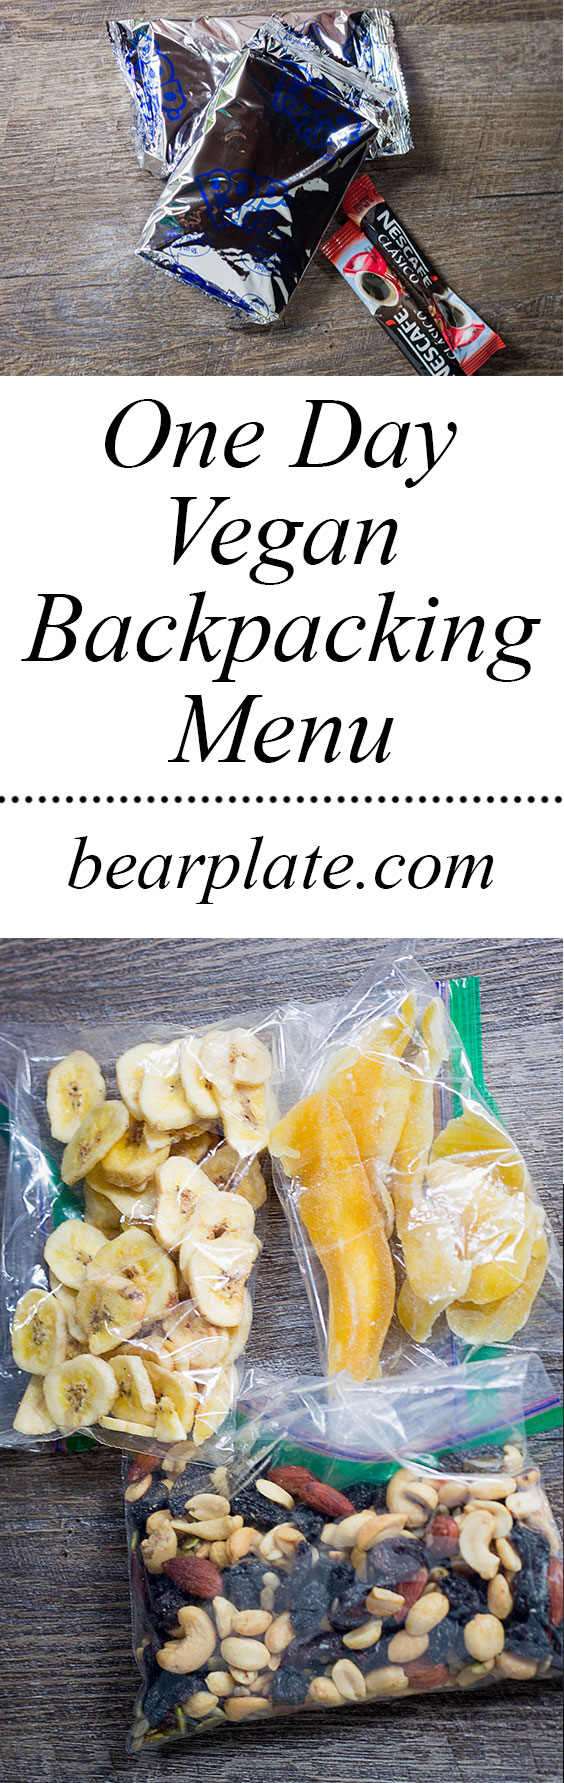 EASY Vegan Backpacking Menu! One-day vegan backpacking menu with grocery store items! No freeze-dried meals. No dehydrator required. #vegan #easy #plantbased #backpacking #menu #bearplate